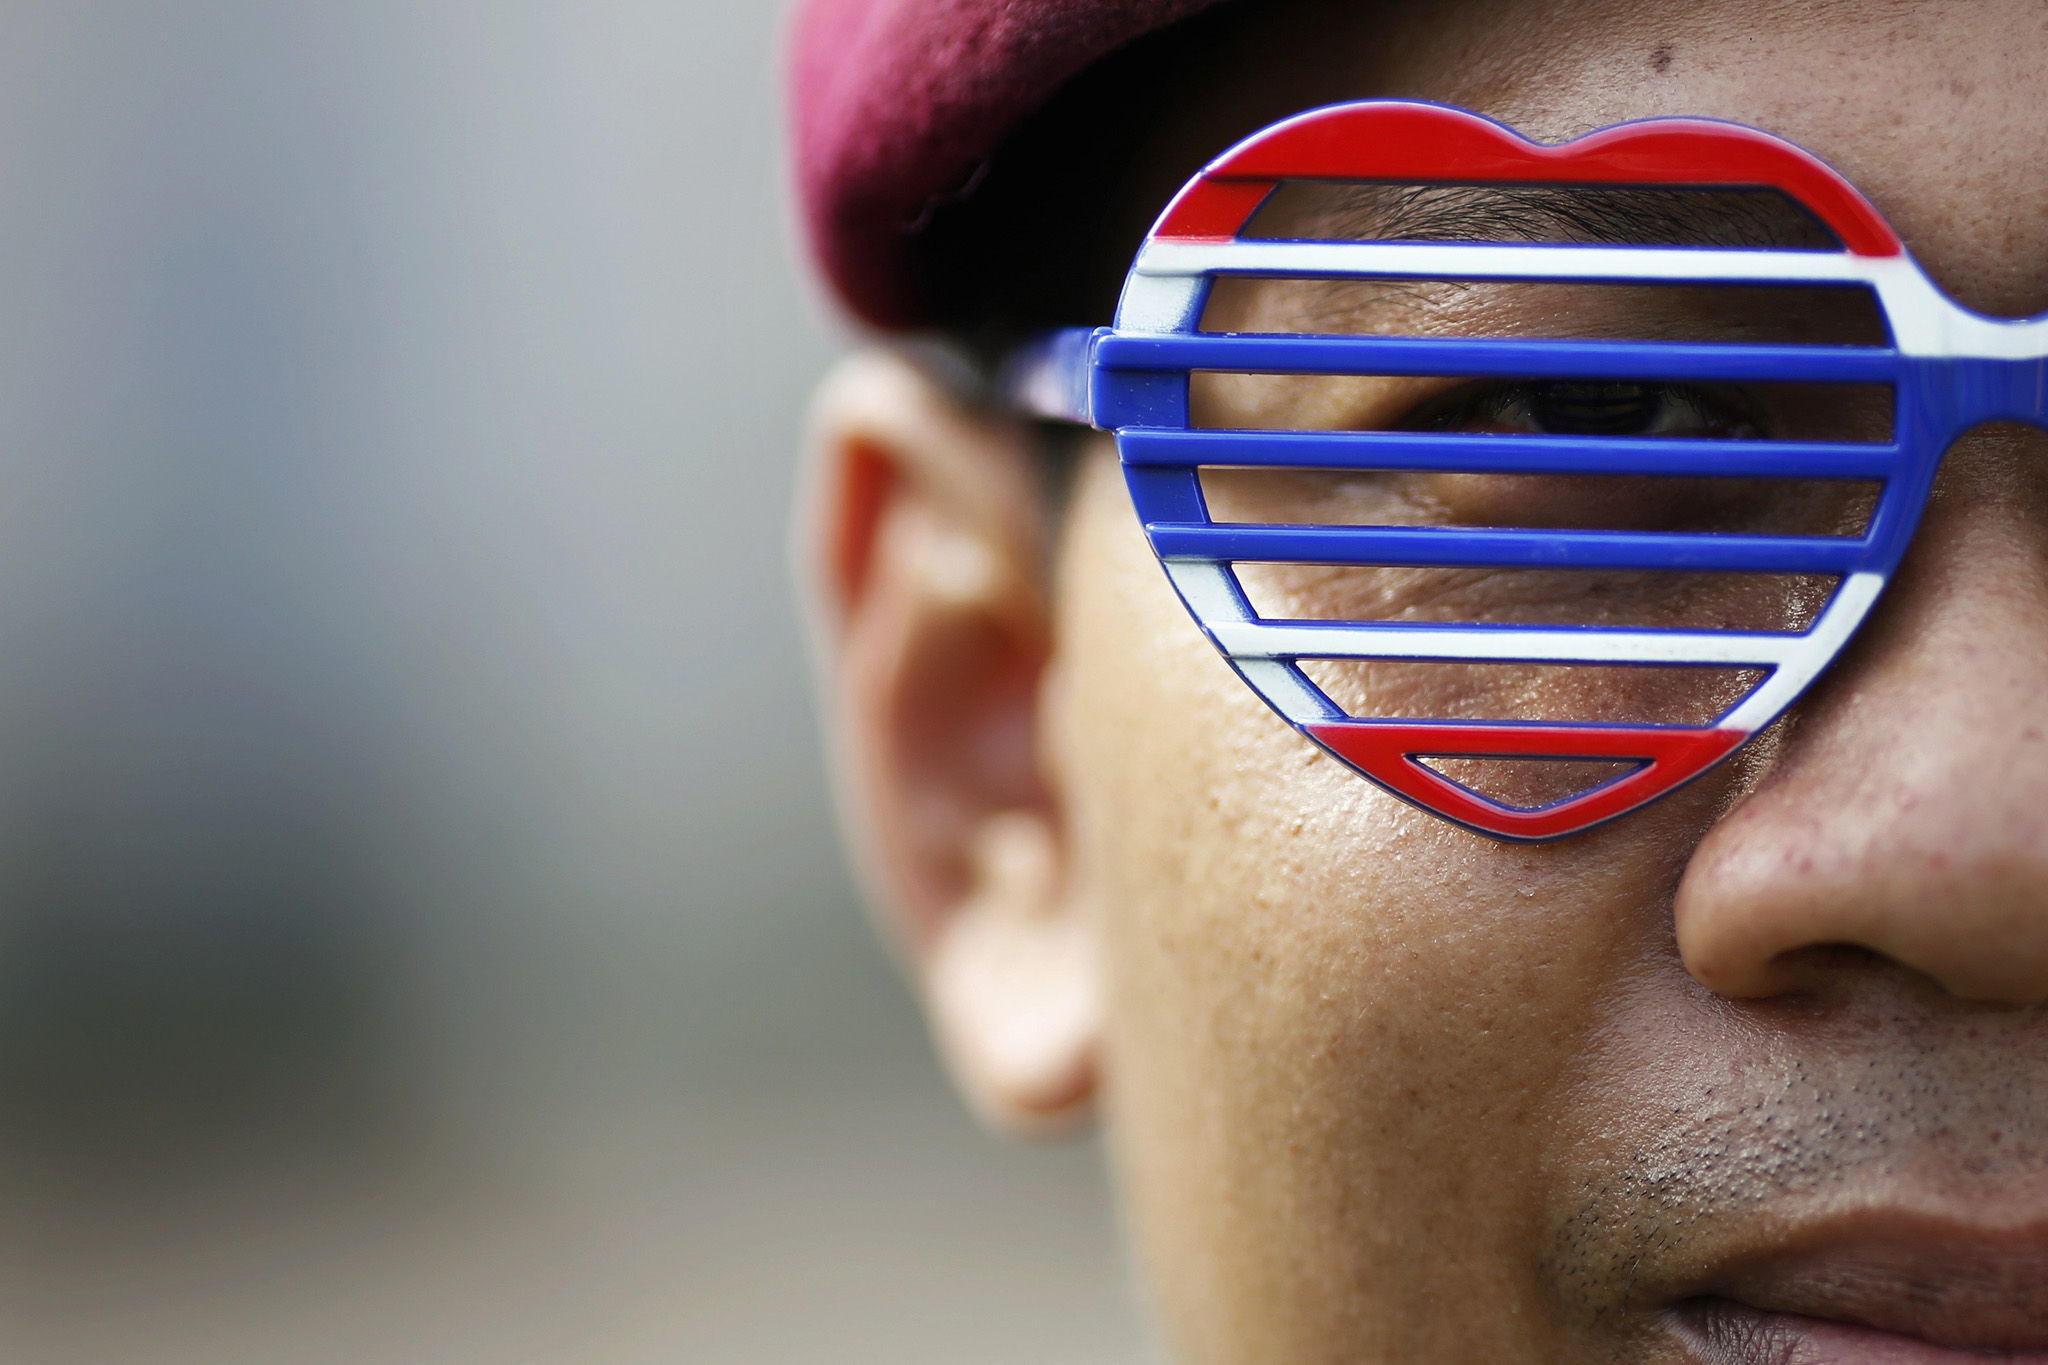 A soldier wears glasses given to him by an anti-government protester who broke in  with others into the compound of the Royal Thai Army headquarters in Bangkok...A soldier wears glasses given to him by an anti-government protester who broke in with others into the compound of the Royal Thai Army headquarters in Bangkok November 29, 2013. About 1,500 anti-government protesters forced their way into the compound of Thailand's army headquarters on Friday, the latest escalation in a city-wide demonstration seeking to topple Prime Minister Yingluck Shinawatra.  REUTERS/Damir Sagolj